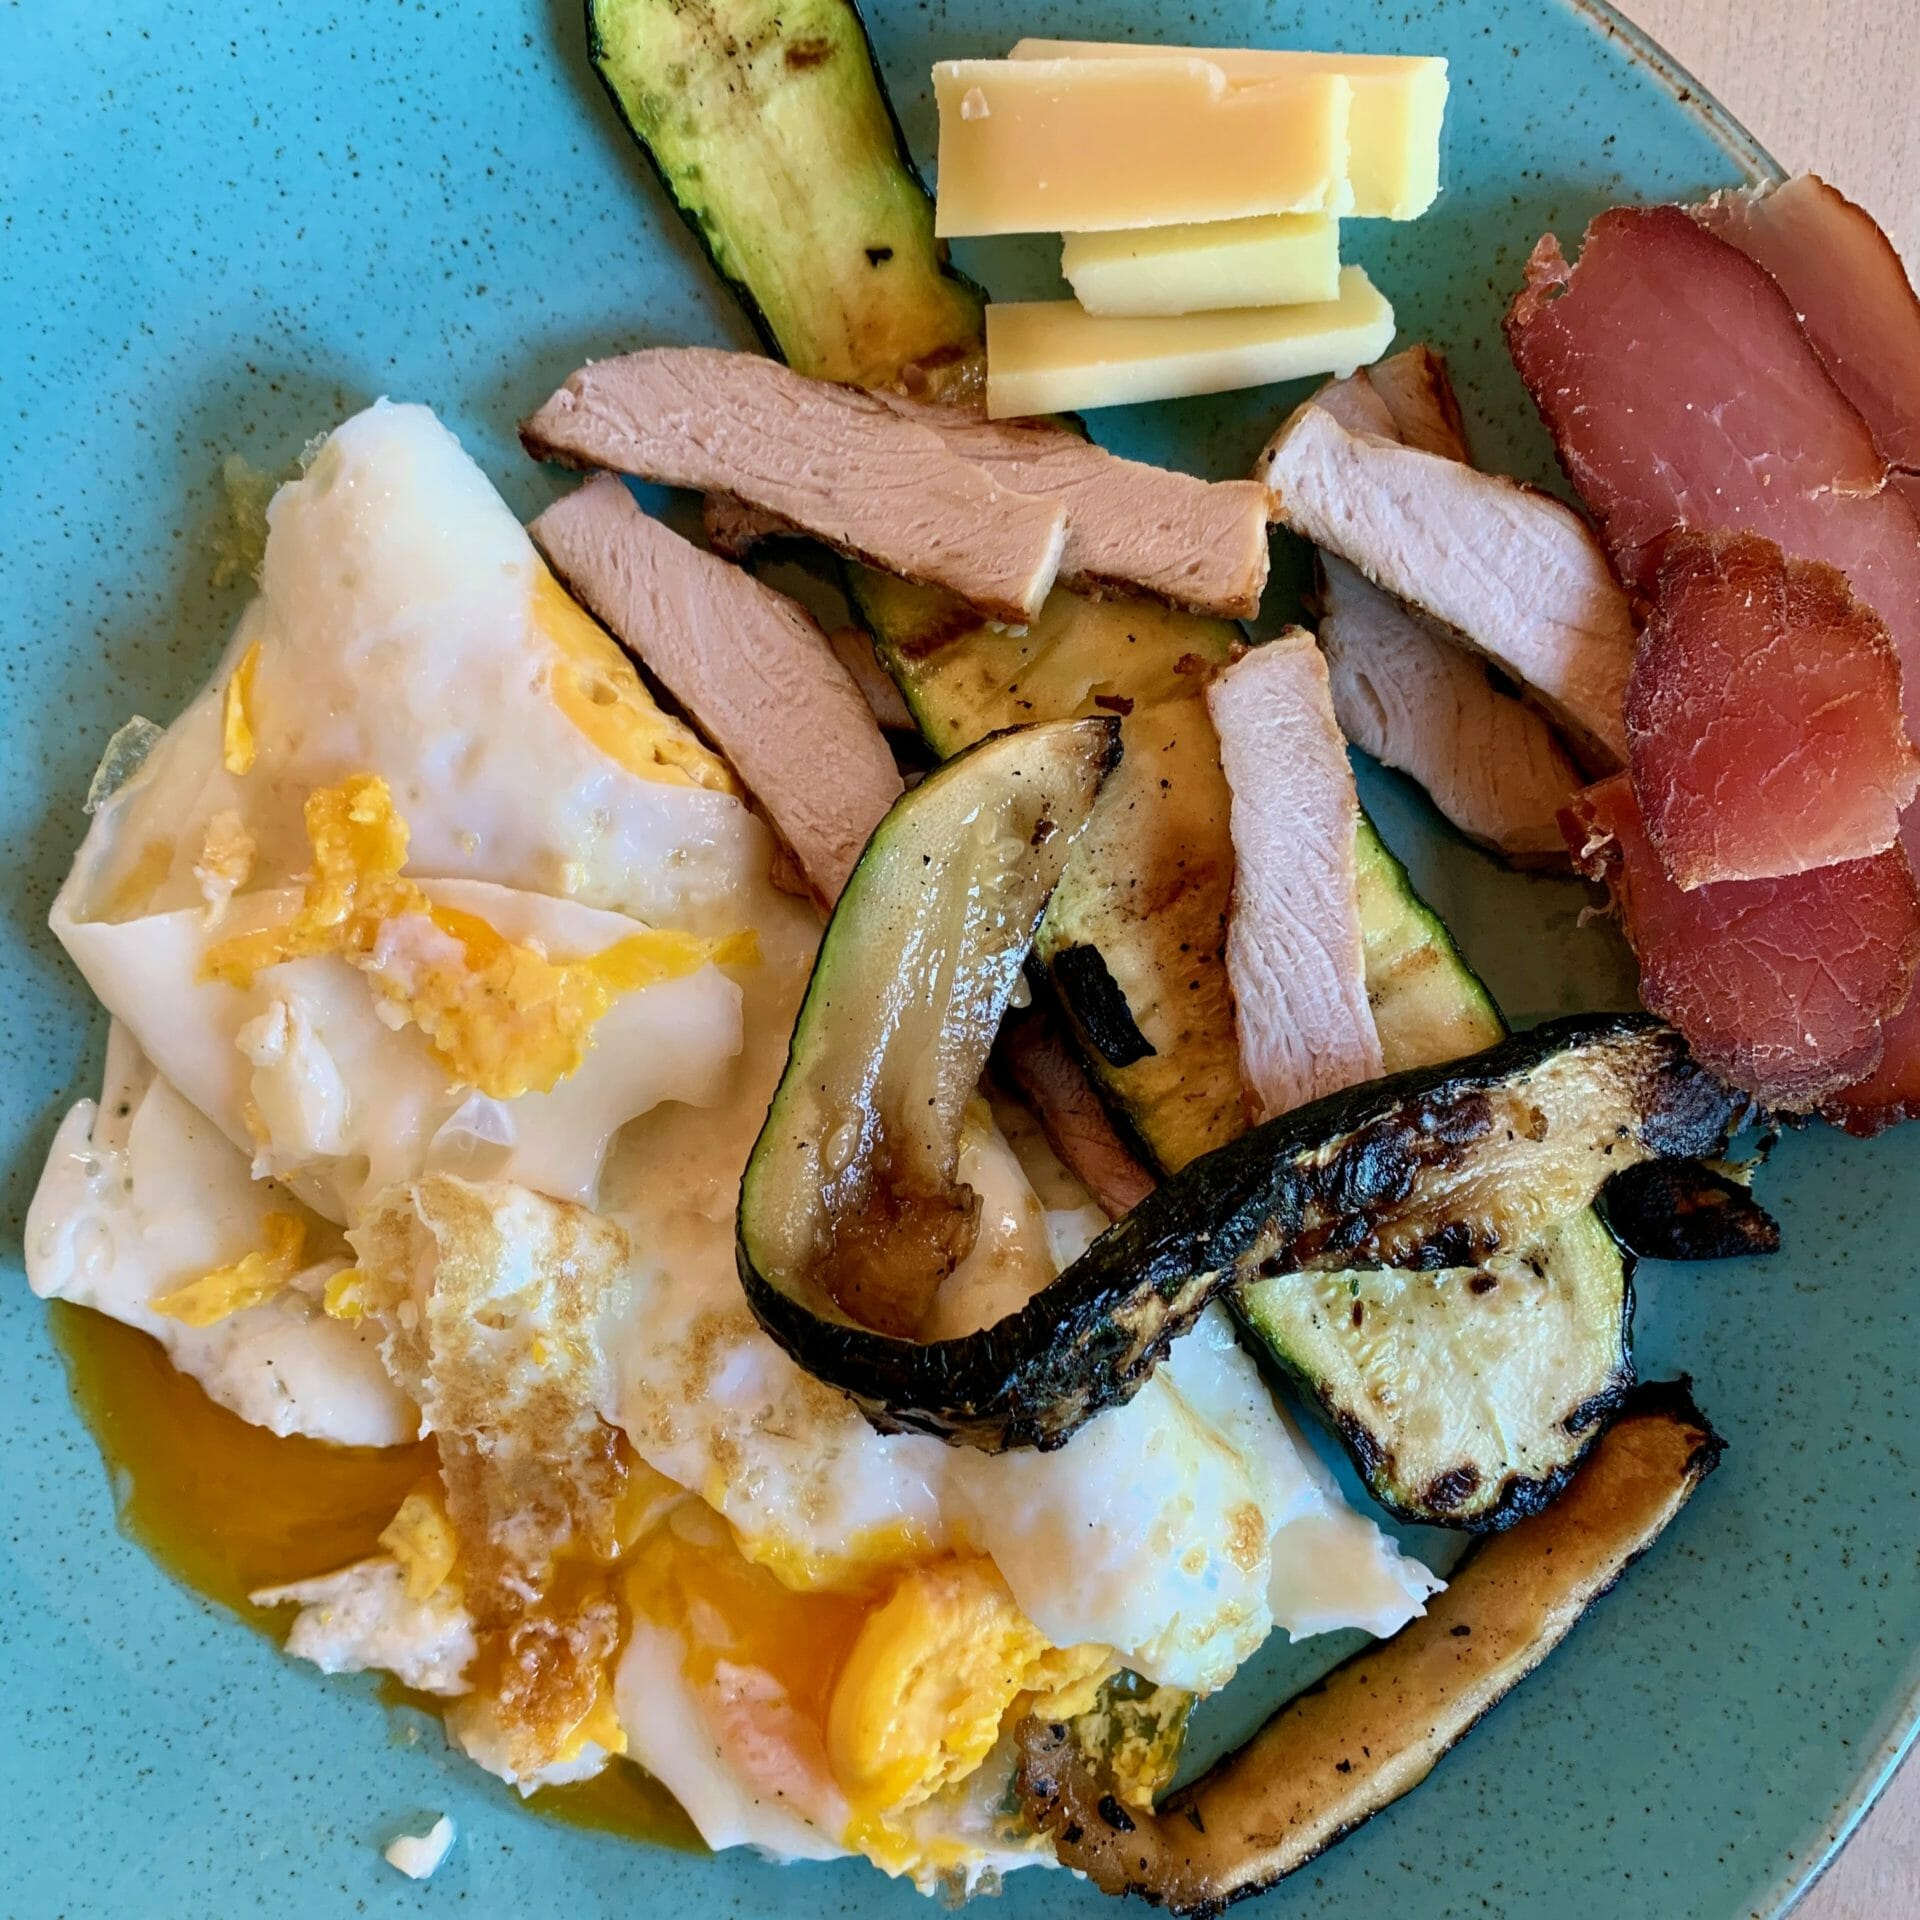 Fried eggs, ham, sliced grilled chicken, grilled zucchini and raw cheese